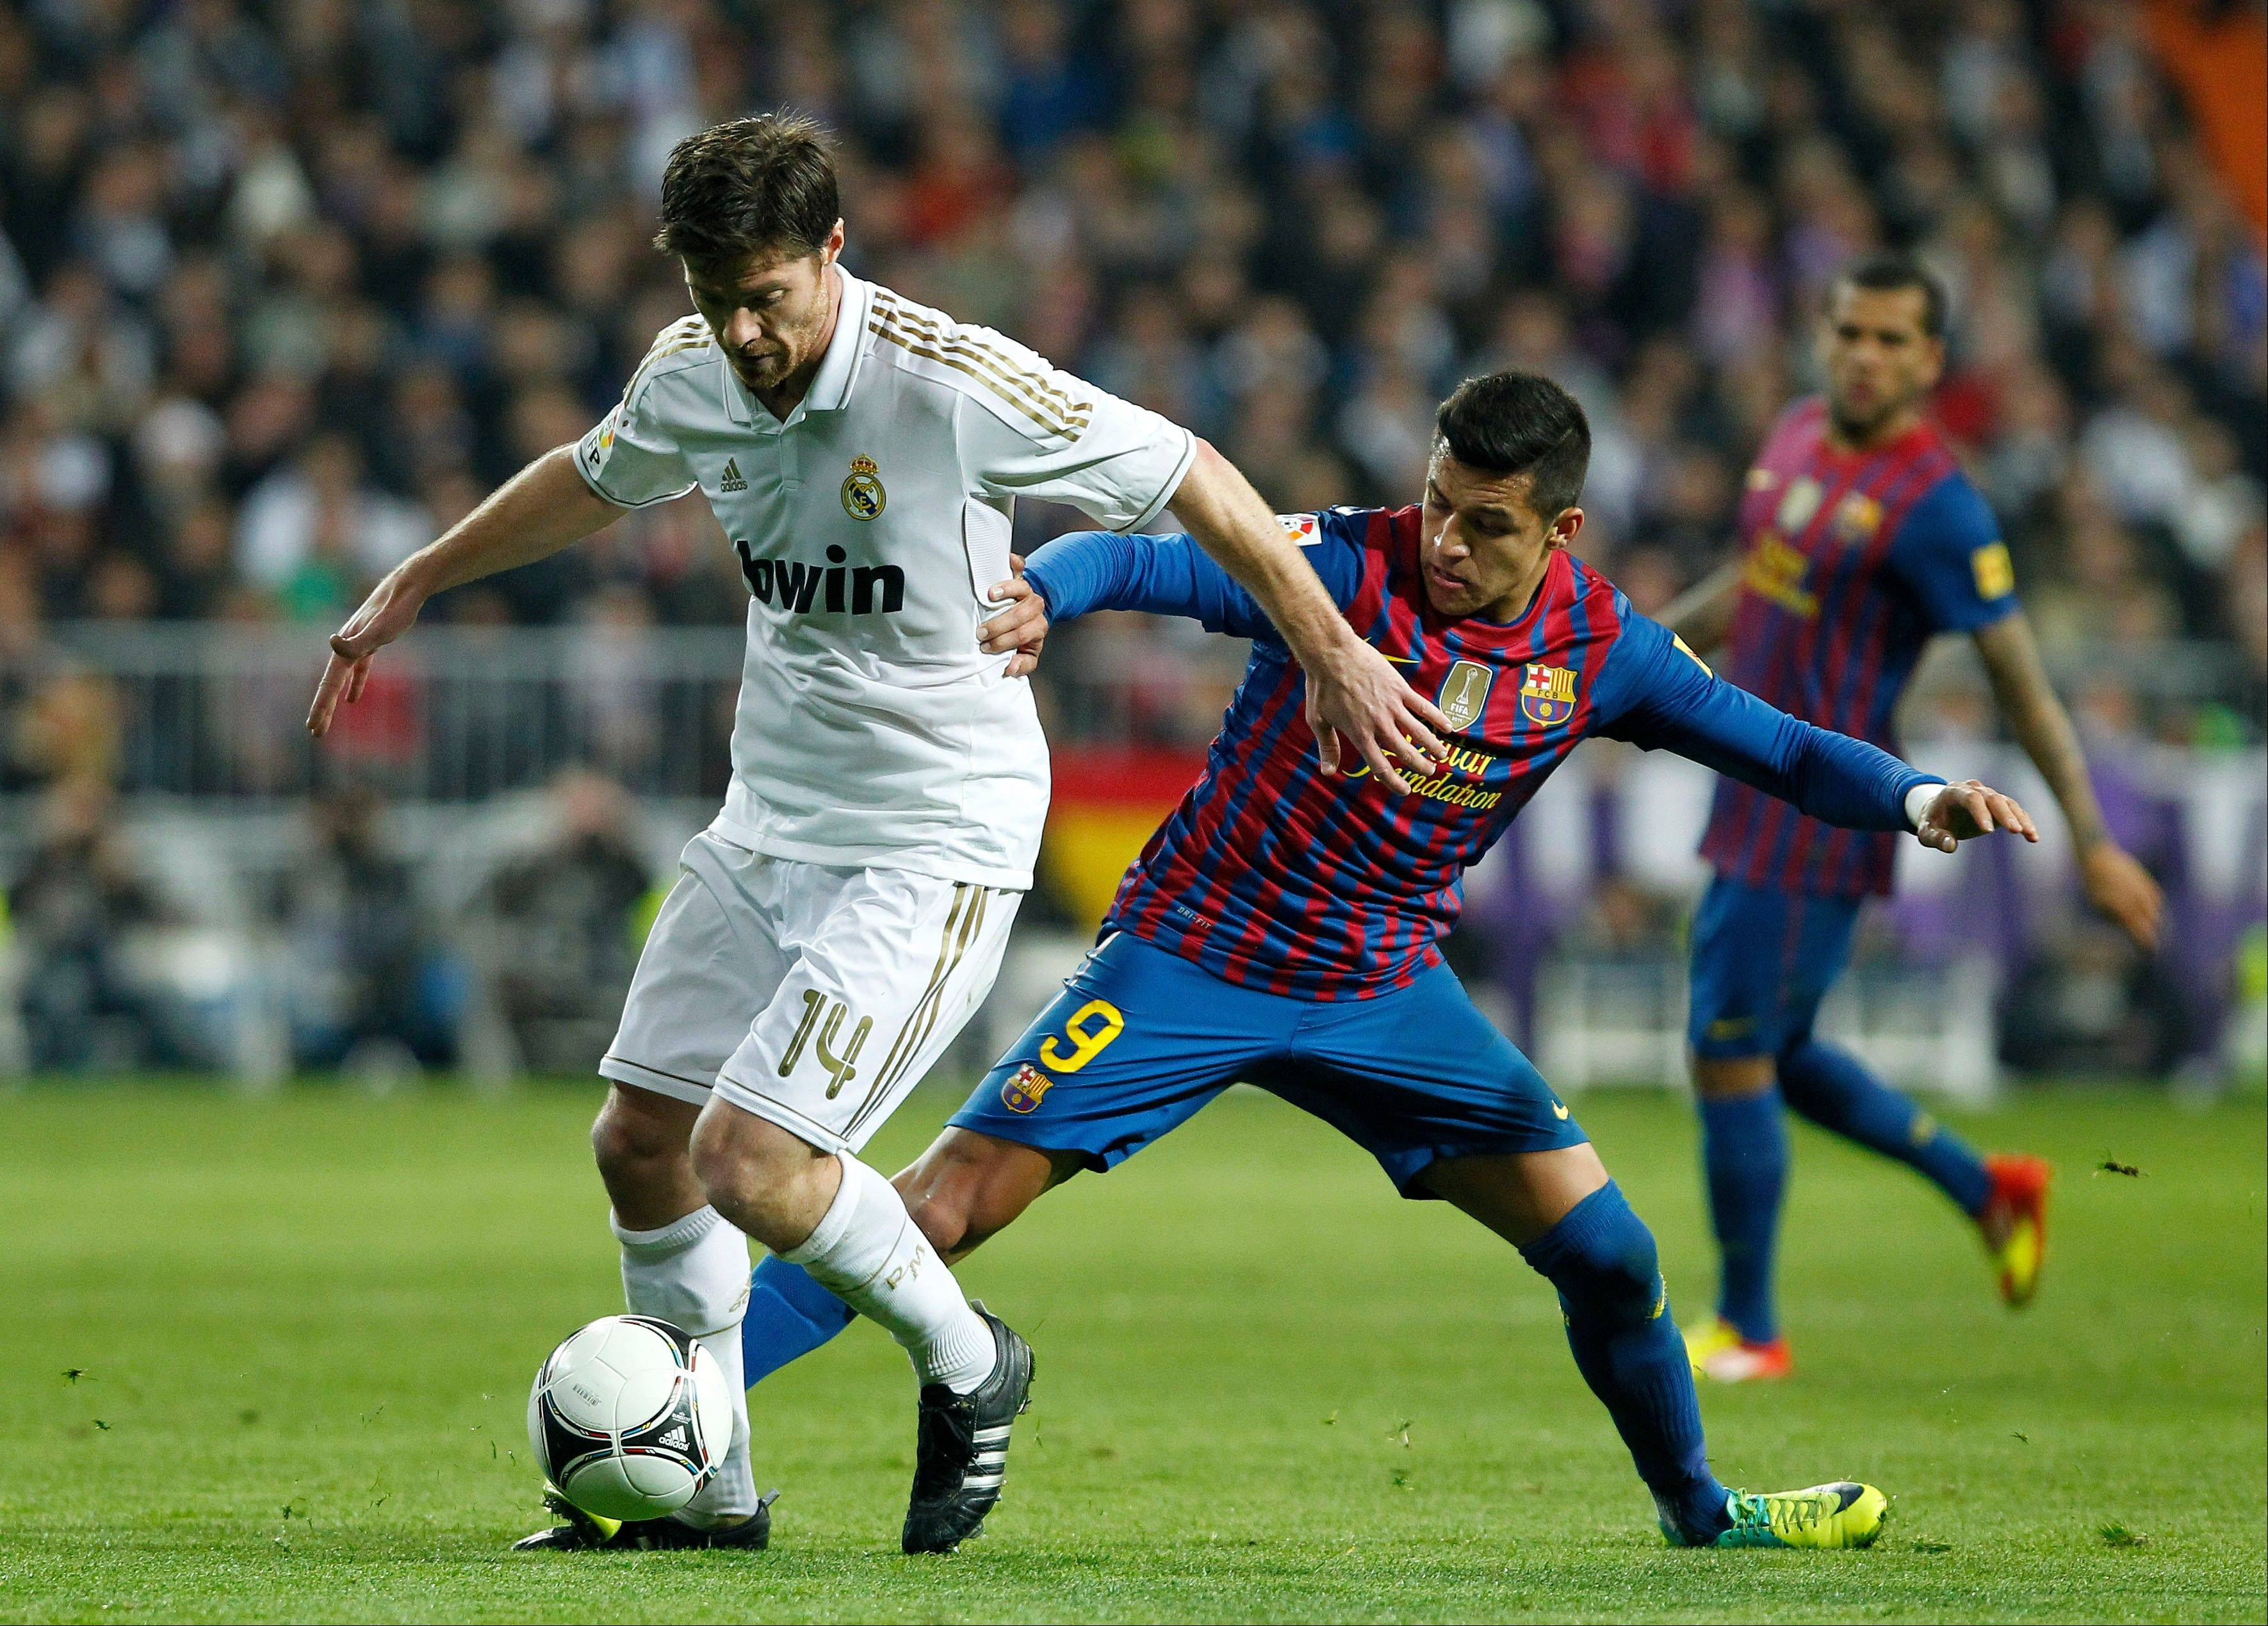 FC Barcelona's Alexis Sanchez from Chile, right, vies for the ball with Real Madrid's Xabi Alonso, left, during a match in Madrid, Spain, in January 2012. Forbes said Monday that Real Madrid is the most valuable sports team in the world.